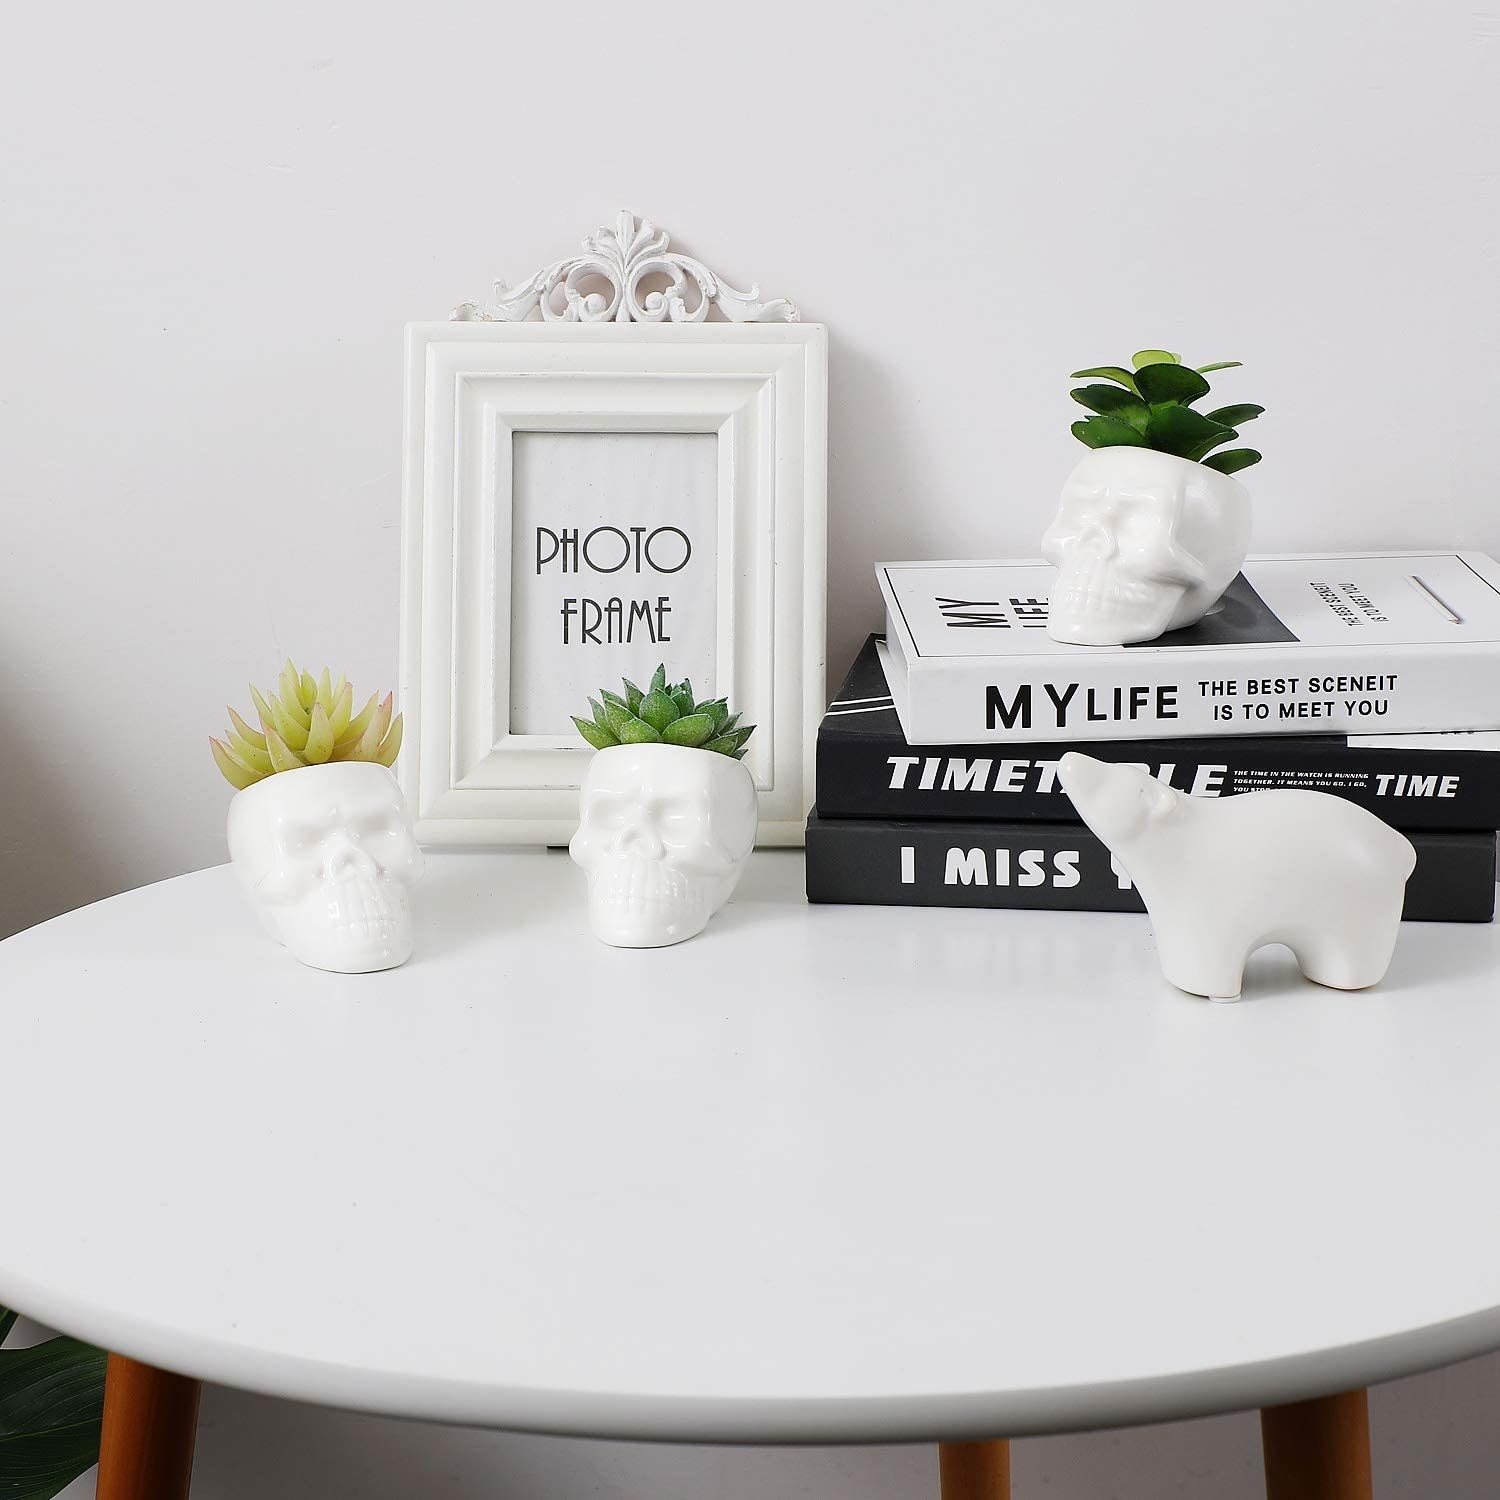 Three skull-shaped plant pots on a table with succulents inside of them